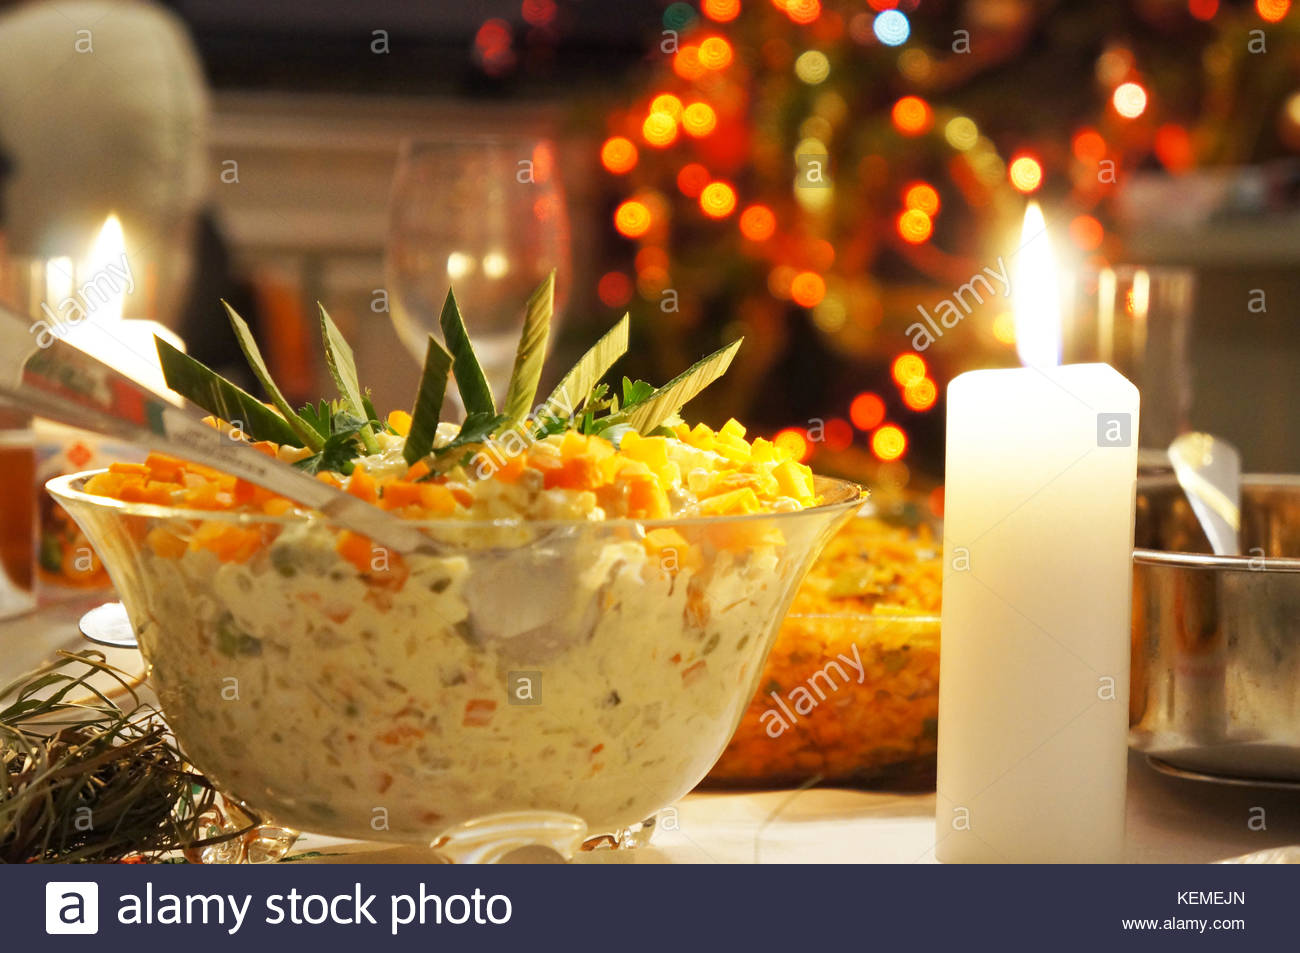 A Polish Christmas salad served in a bowl on a evening - Stock Image